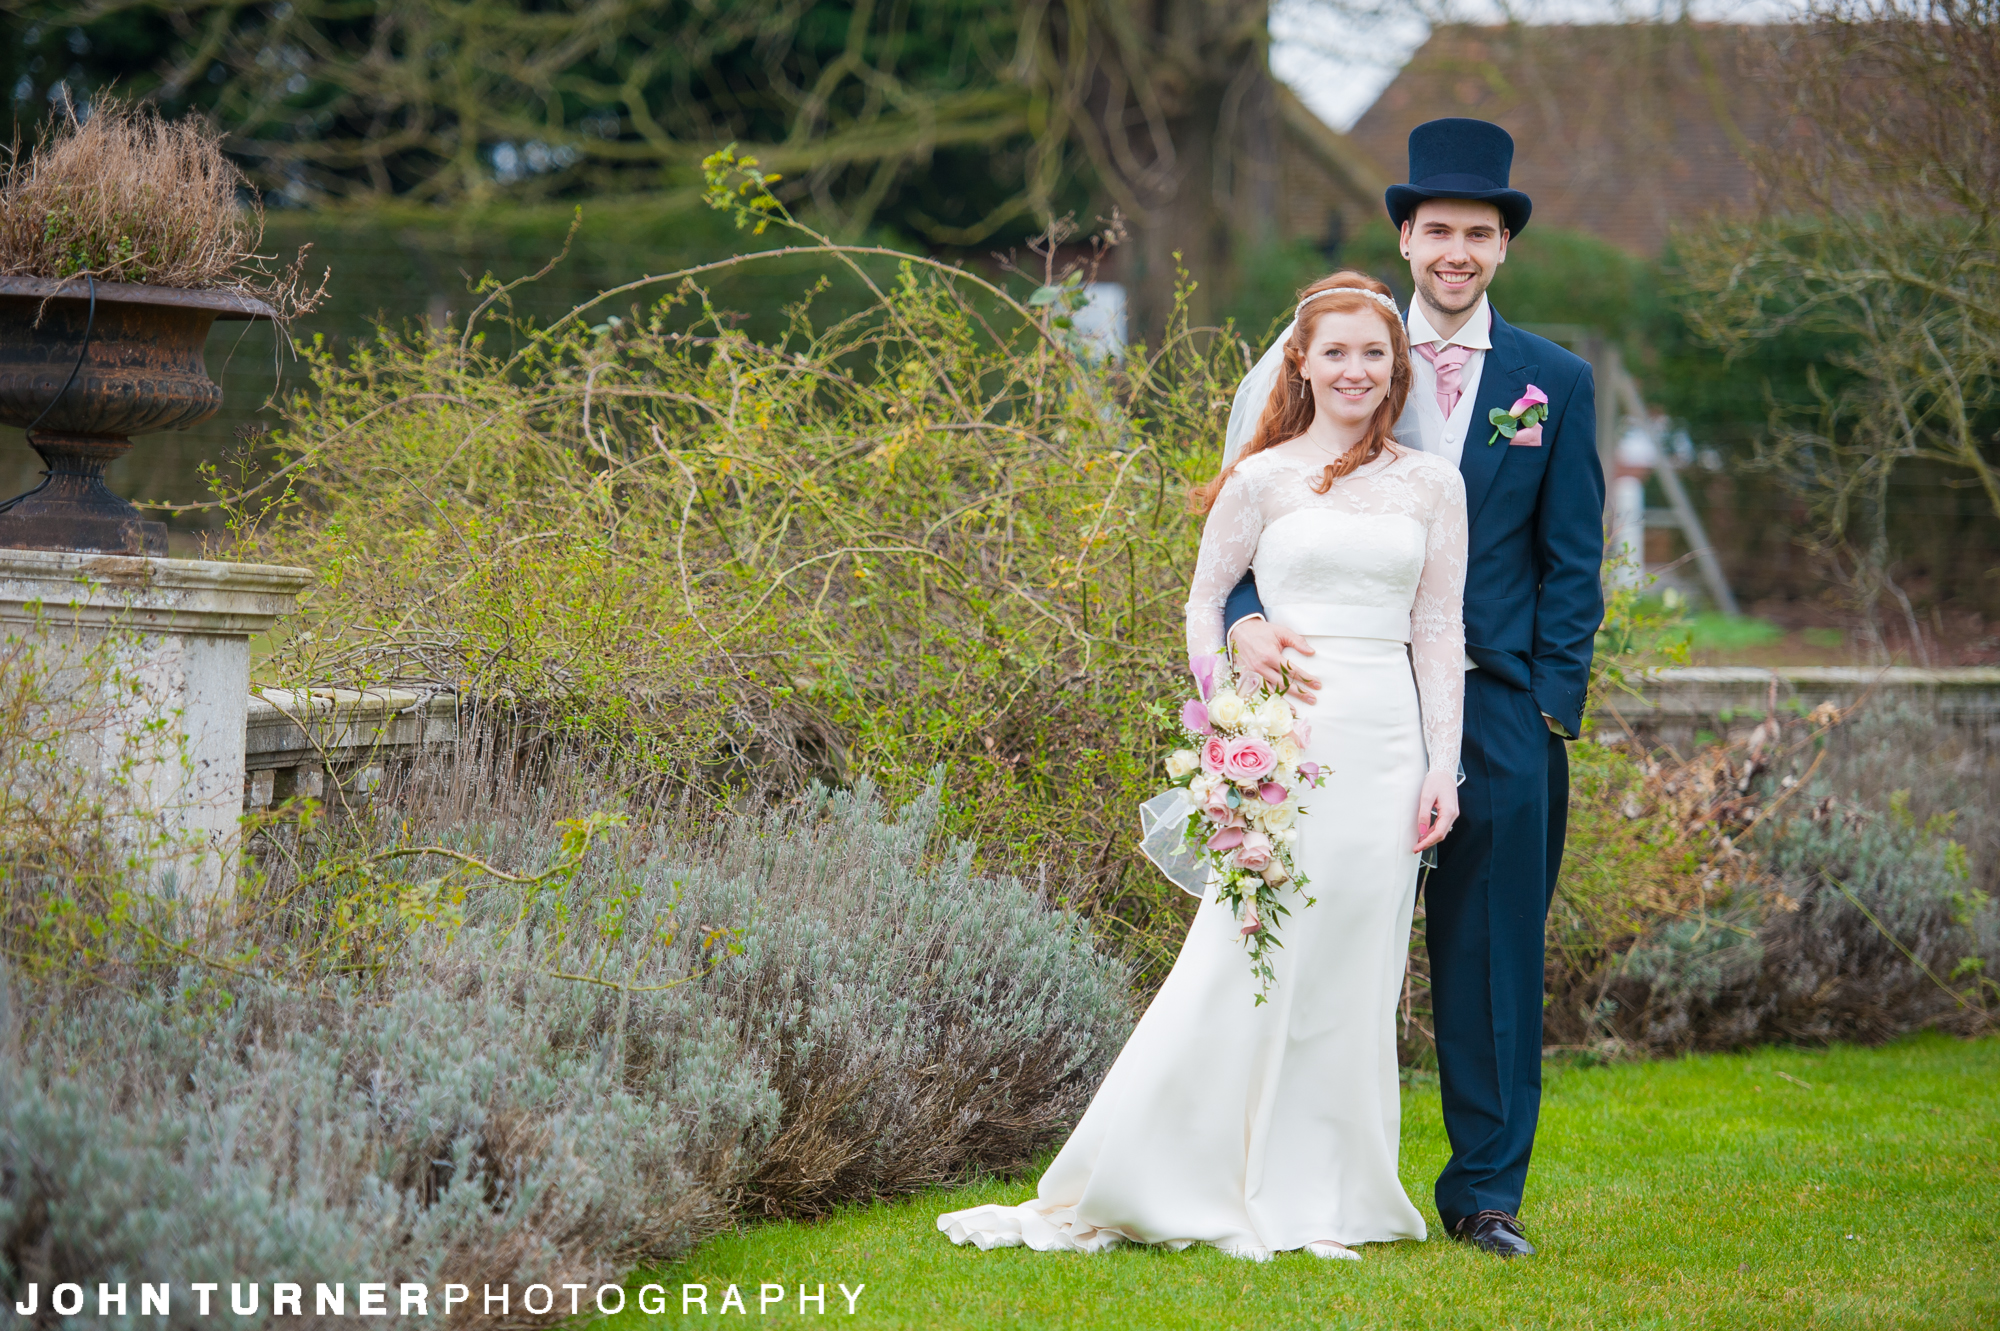 Wedding Photography from Quendon Hall